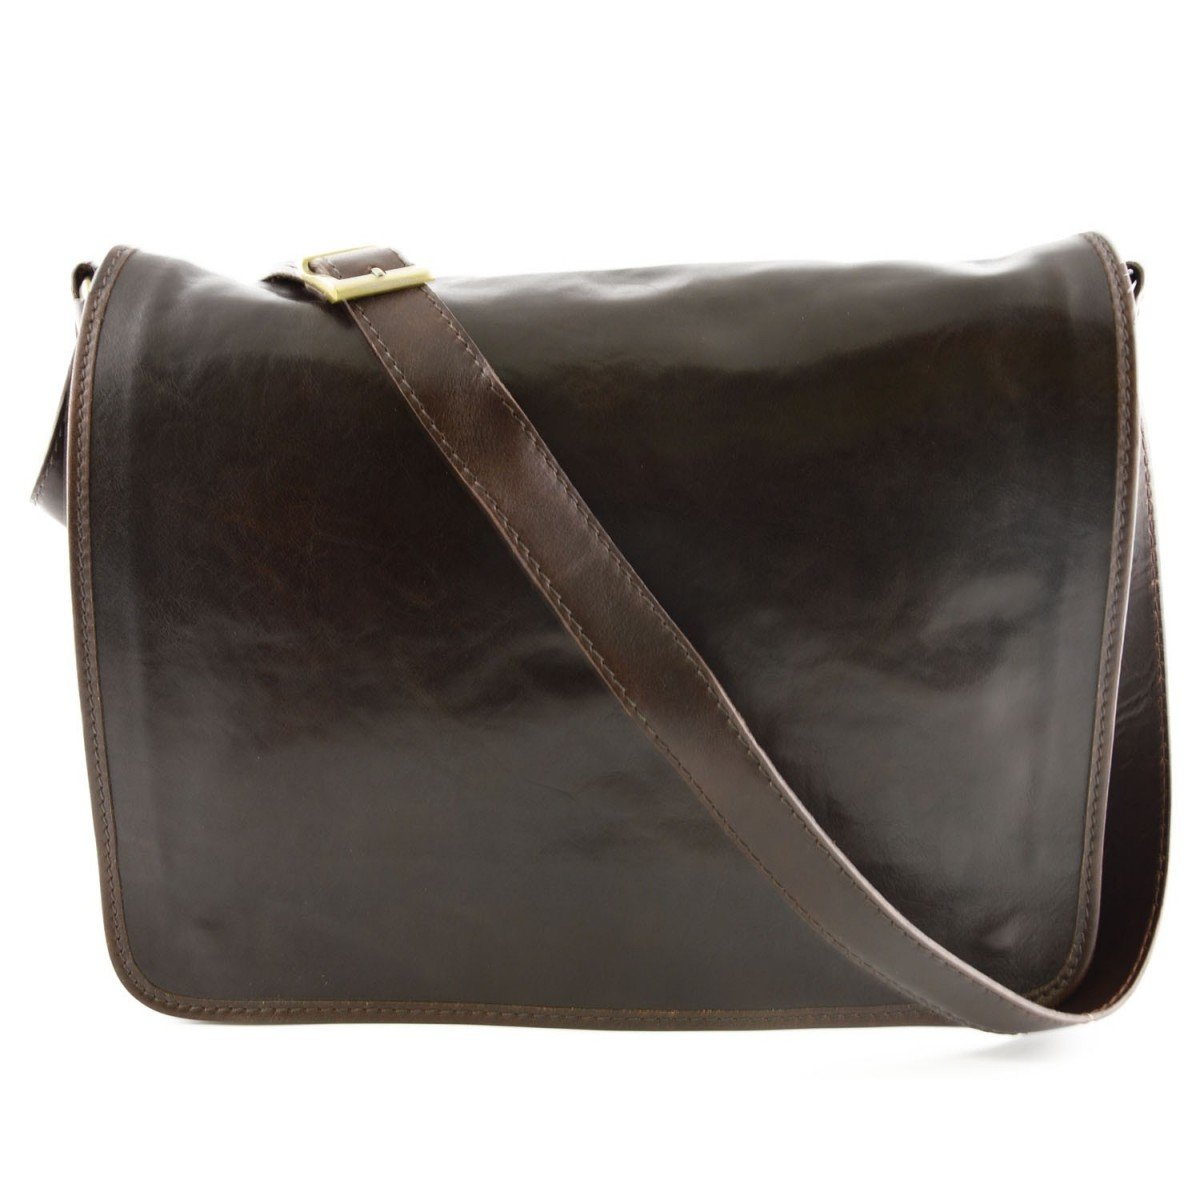 Made In Italy Leather Messenger Bag Color Dark Brown - Man Bag   B0163S0Q6K